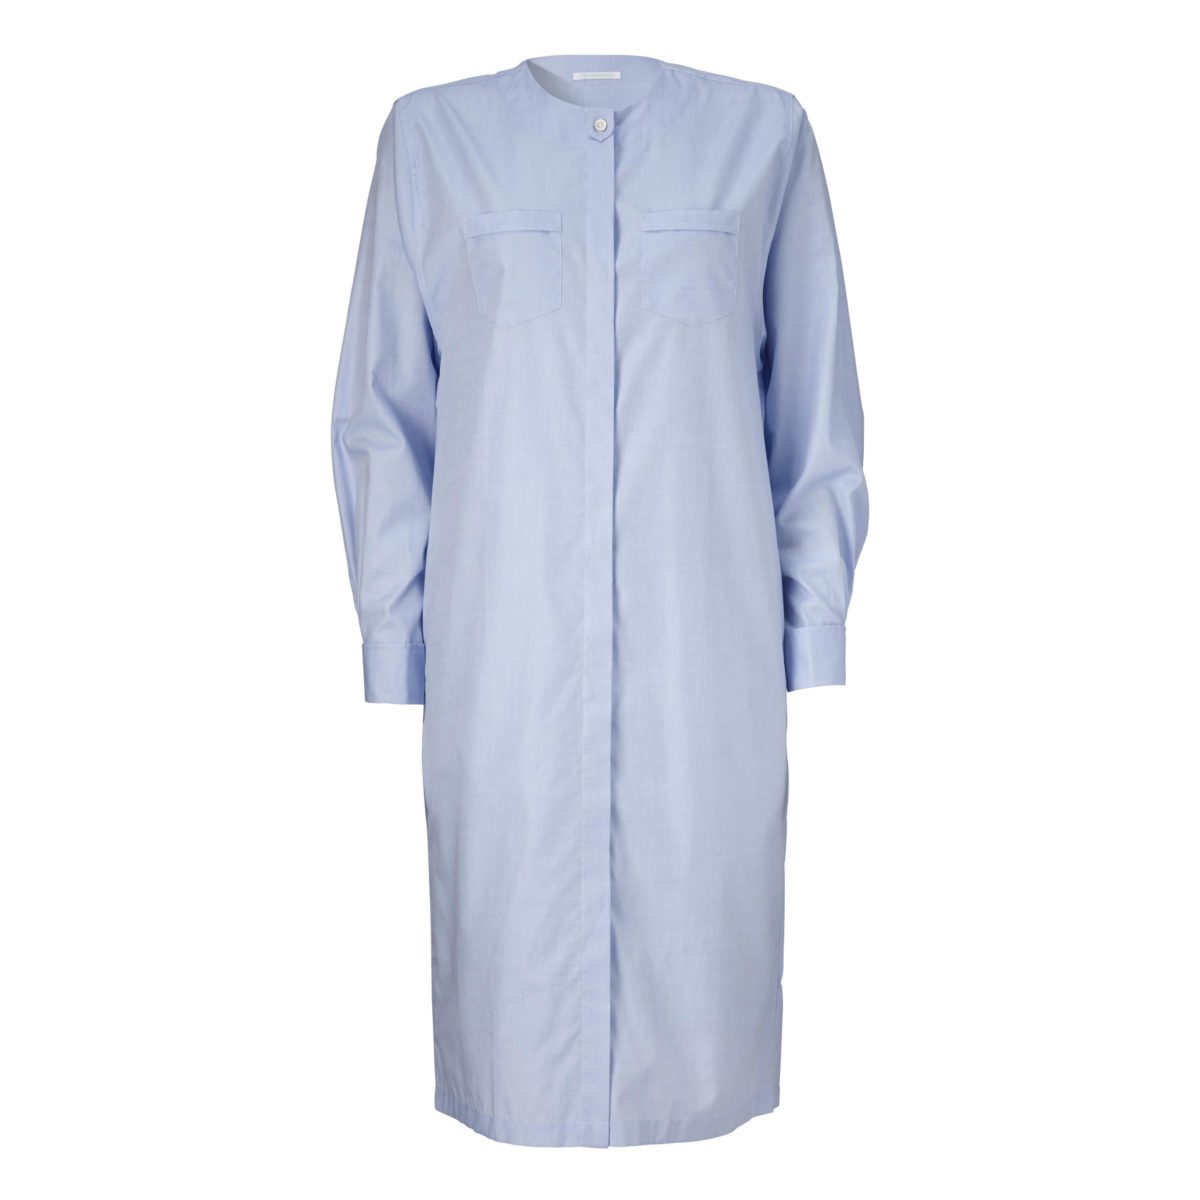 Escher_Shirt_Dress_Light_Blue